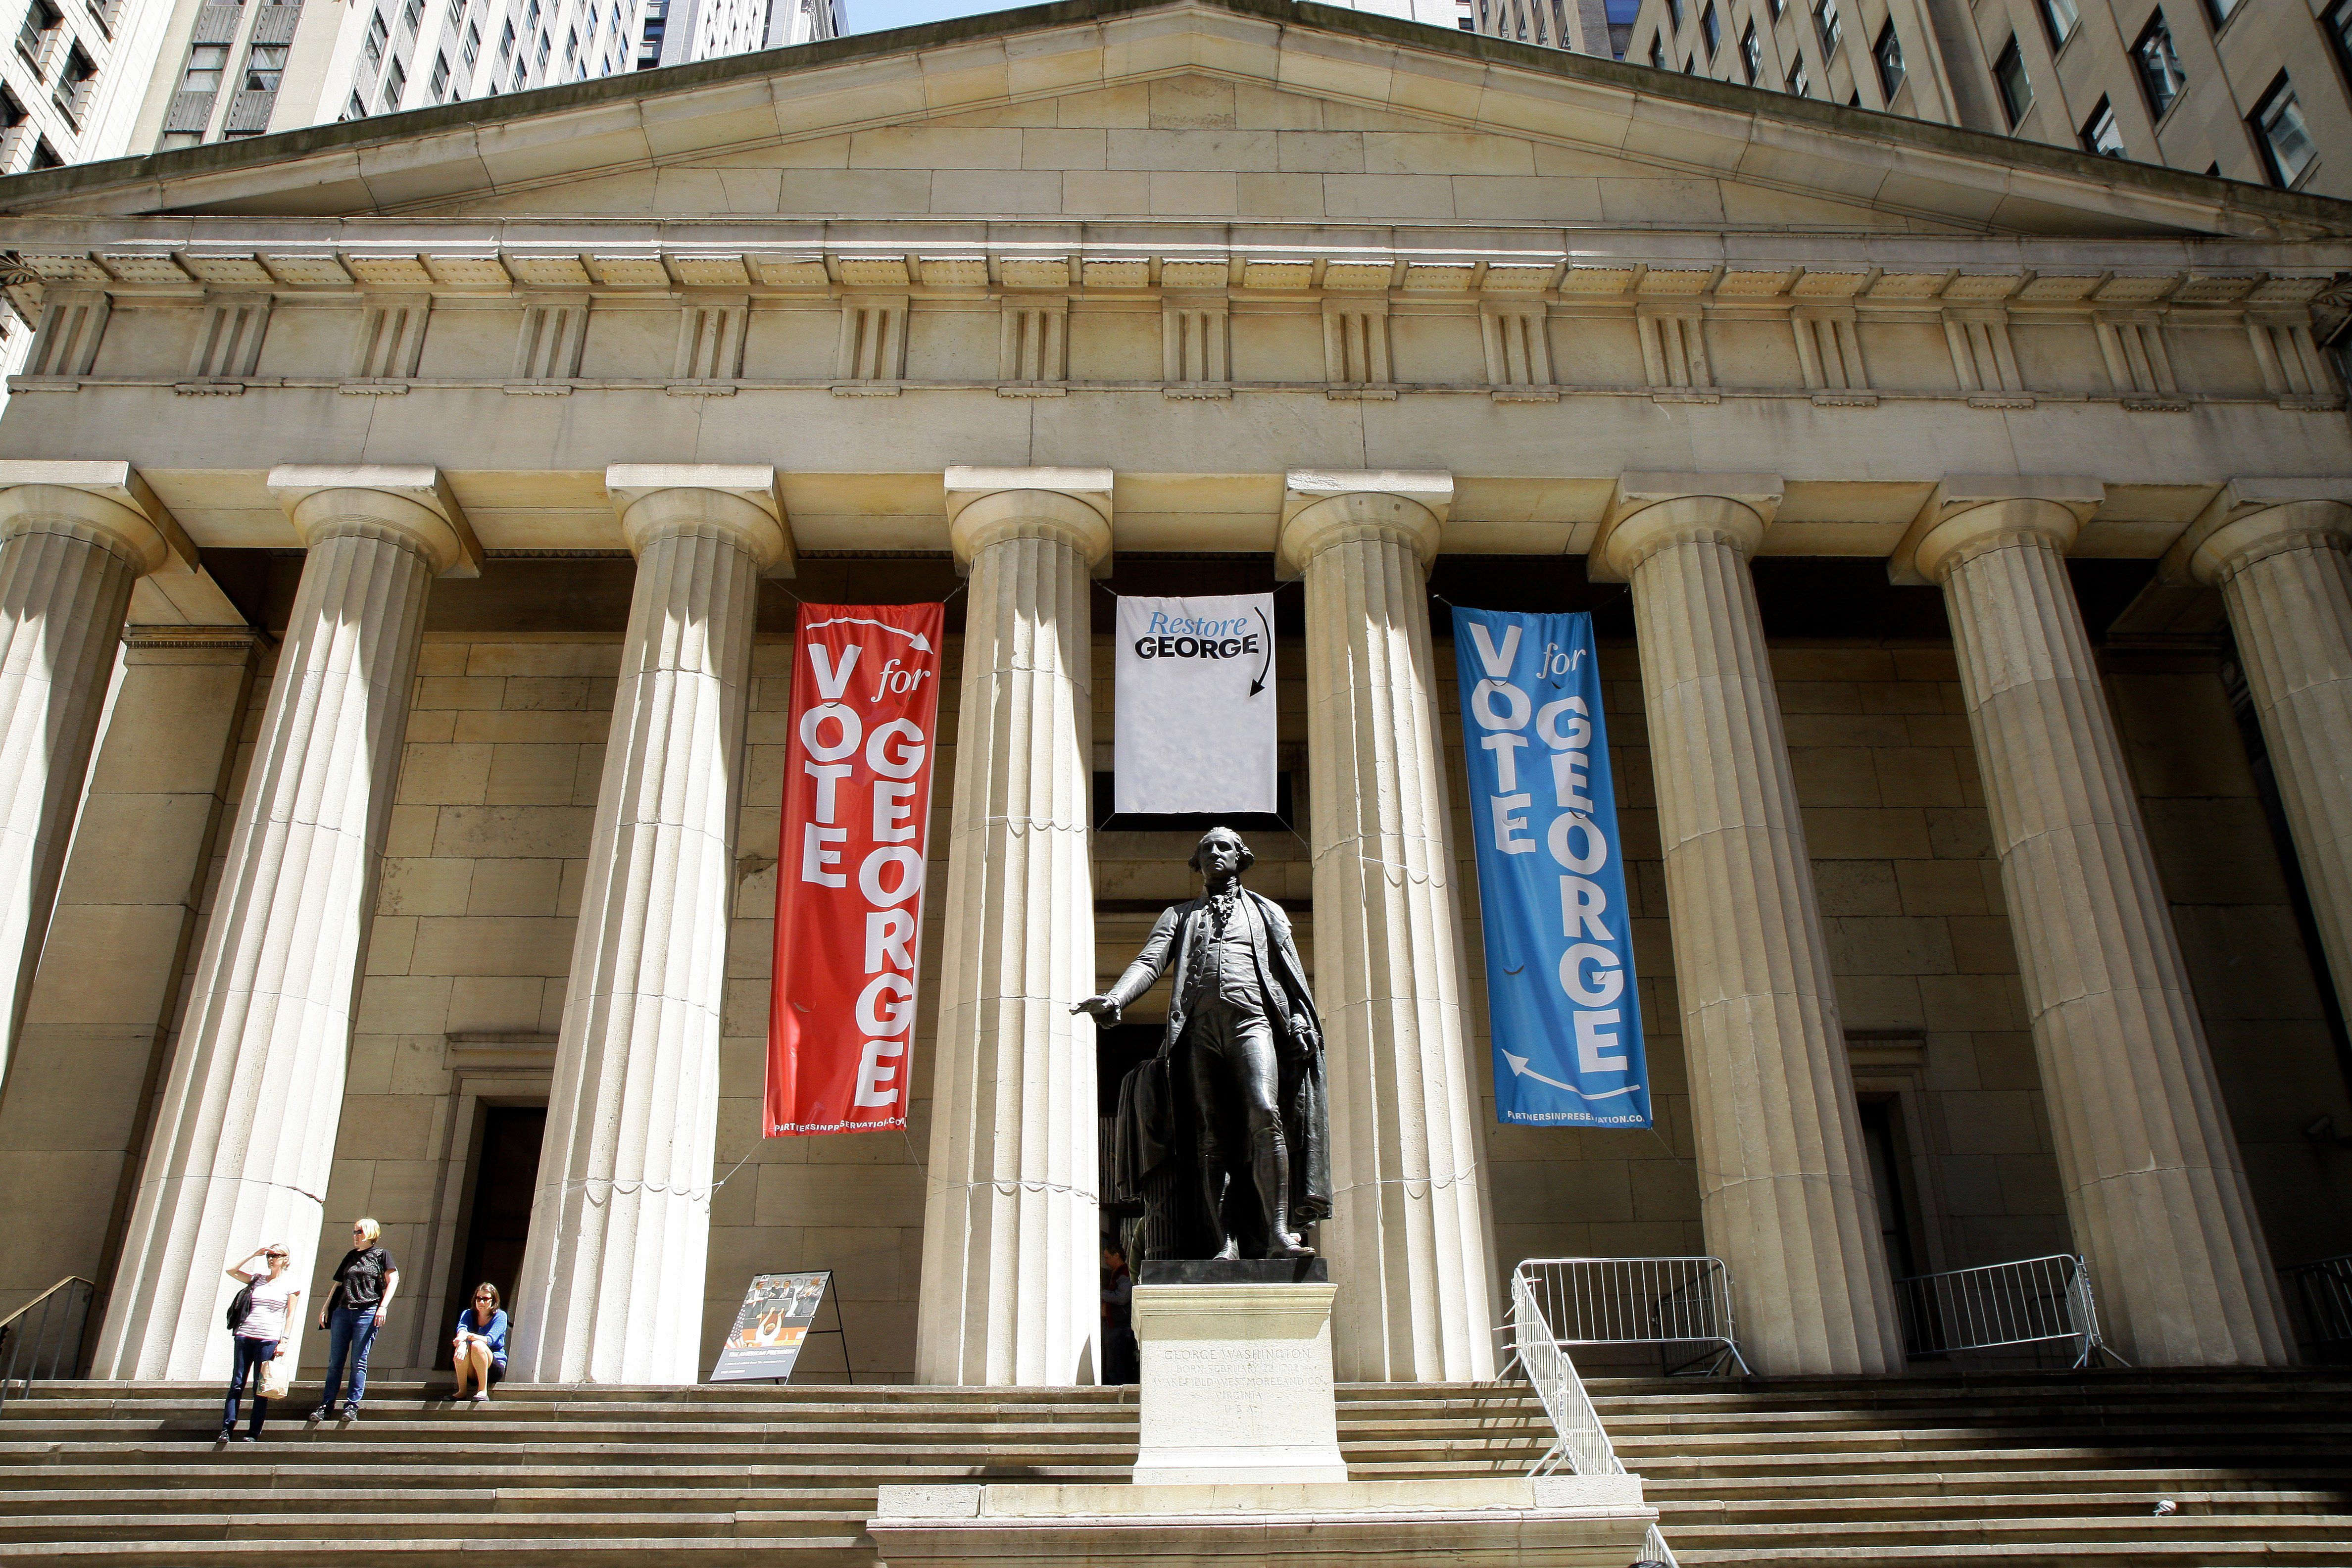 George Washington sculpture on the steps of Federal Hall in lower Manhattan